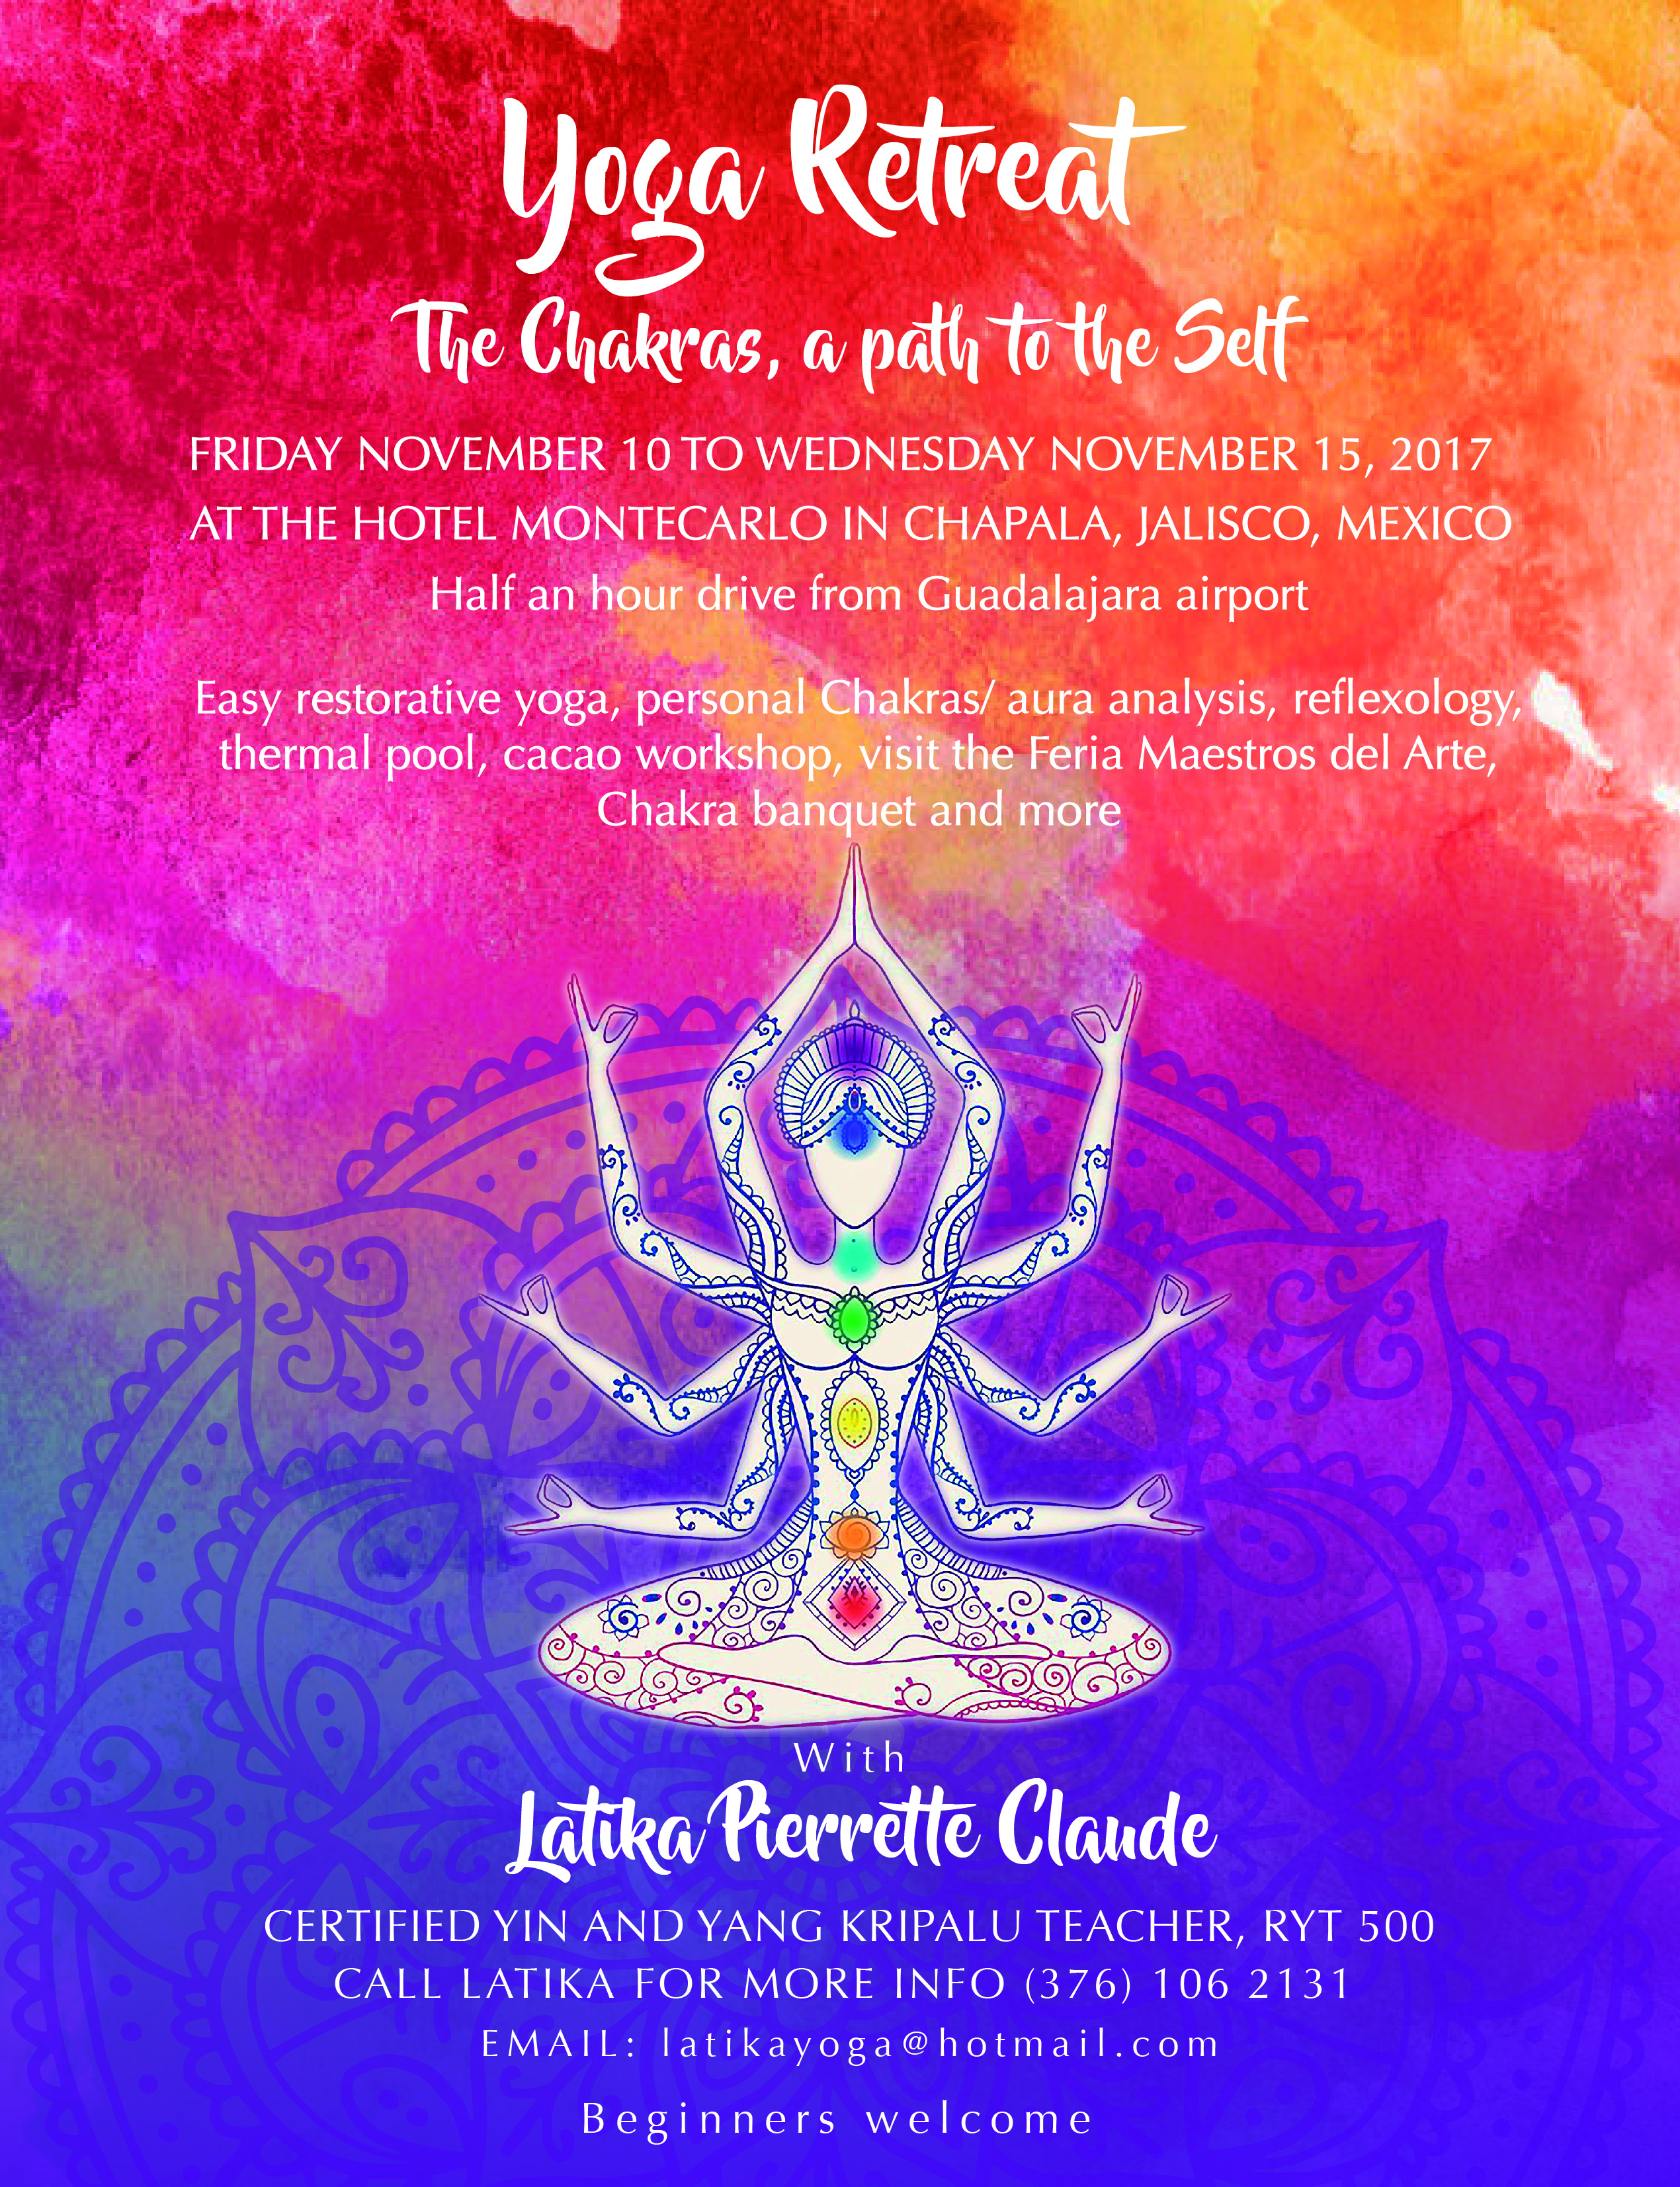 I Am So Honoured To Be Attending This Retreat And Providing A Little Yoga Nidra